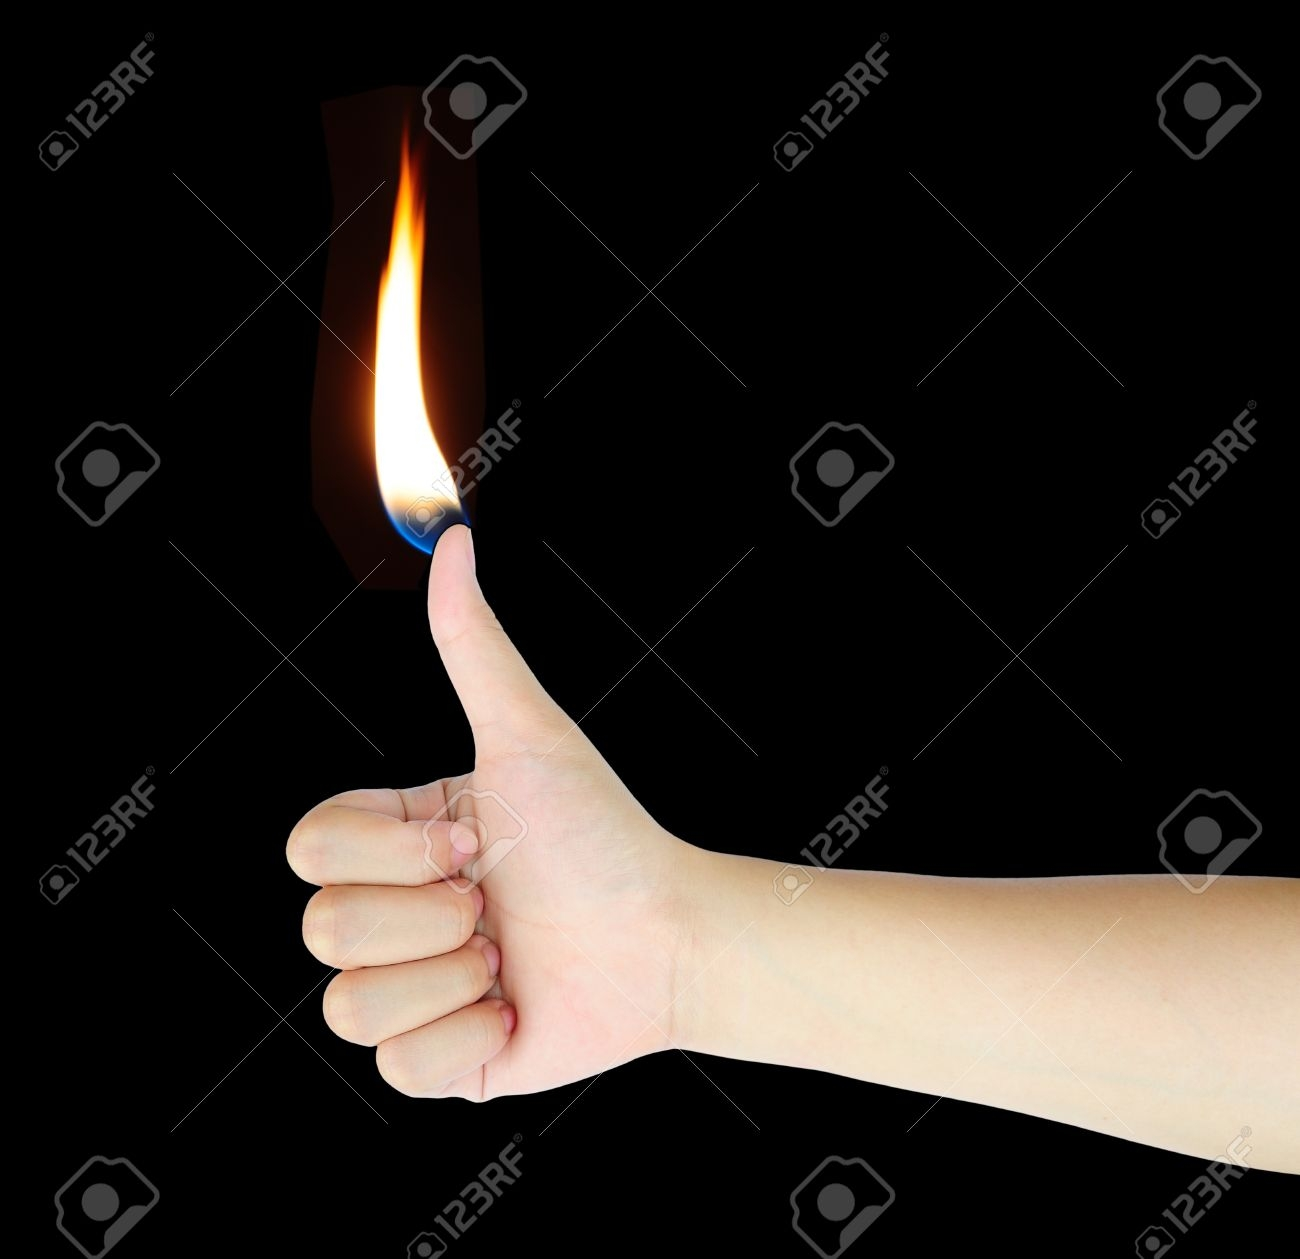 9671381-thumb-up-hand-sign-and-fire-Stock-Photo-fire.jpg